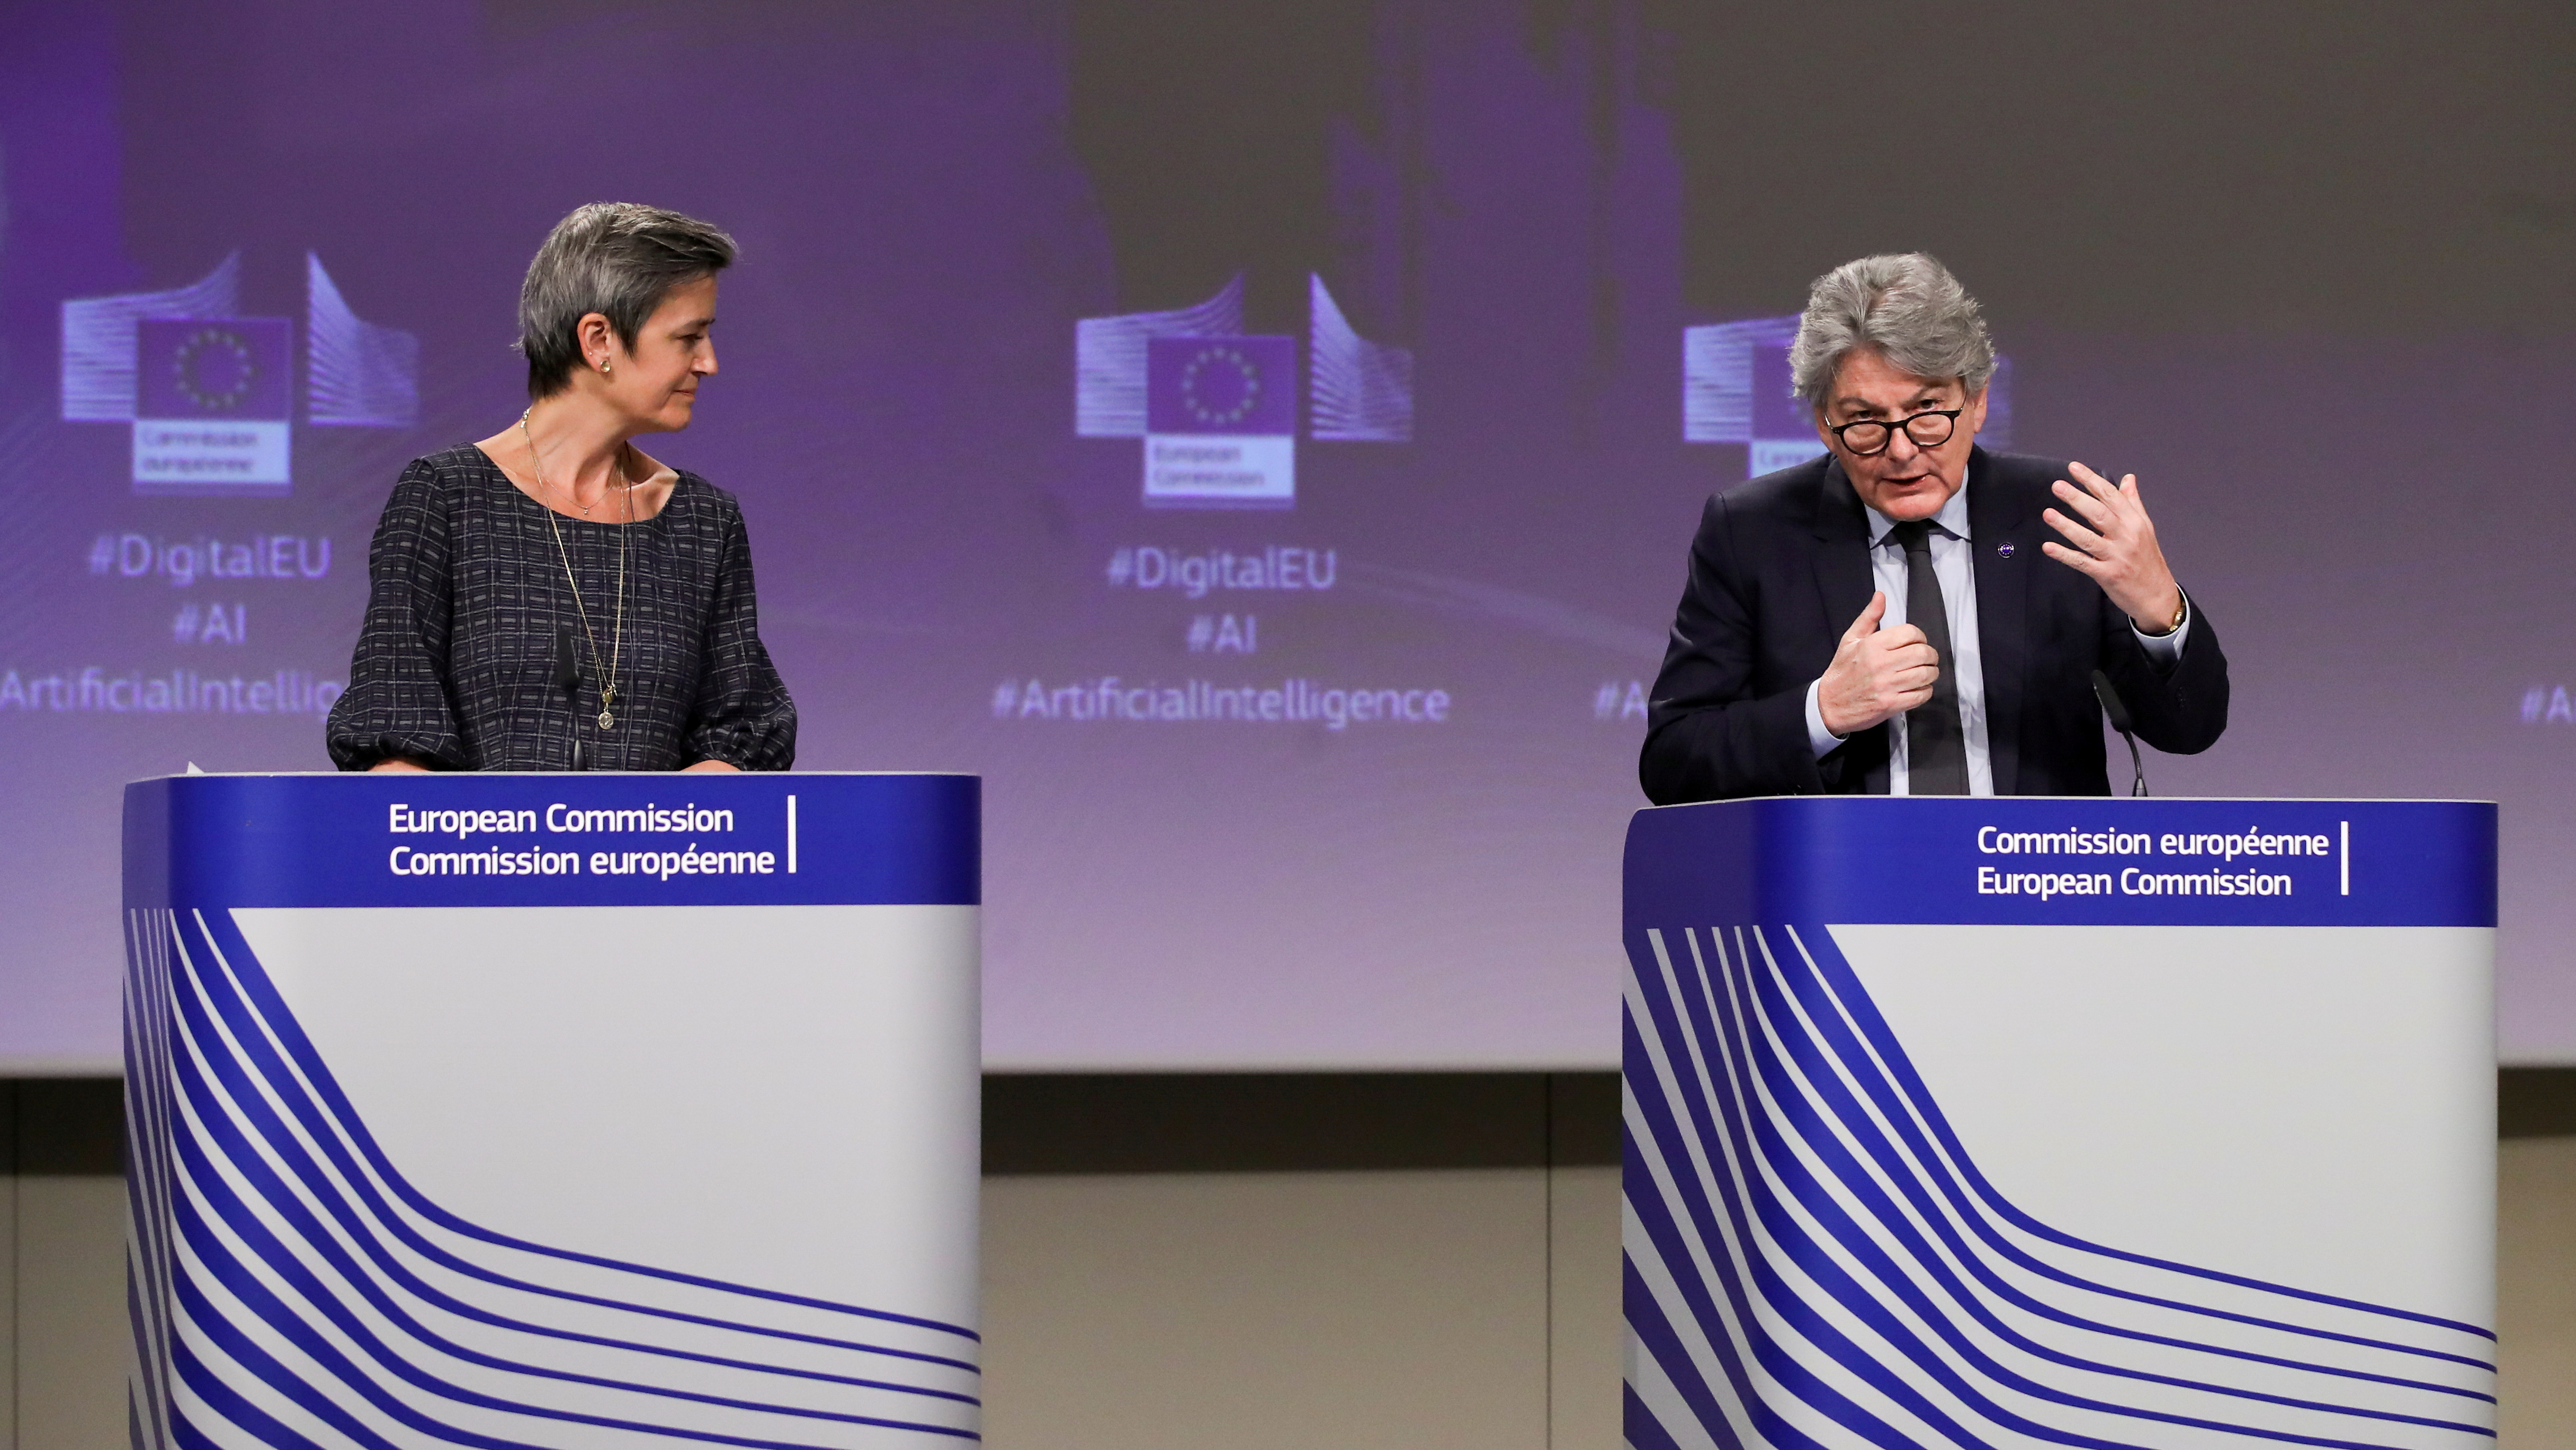 European Executive Vice-President Margrethe Vestager and European Internal Market Commissioner Thierry Breton give a media conference on the EU approach to Artificial Intelligence  following weekly meeting of EU Commission in Brussels, Belgium, April 21, 2021. Olivier Hoslet/Pool via REUTERS